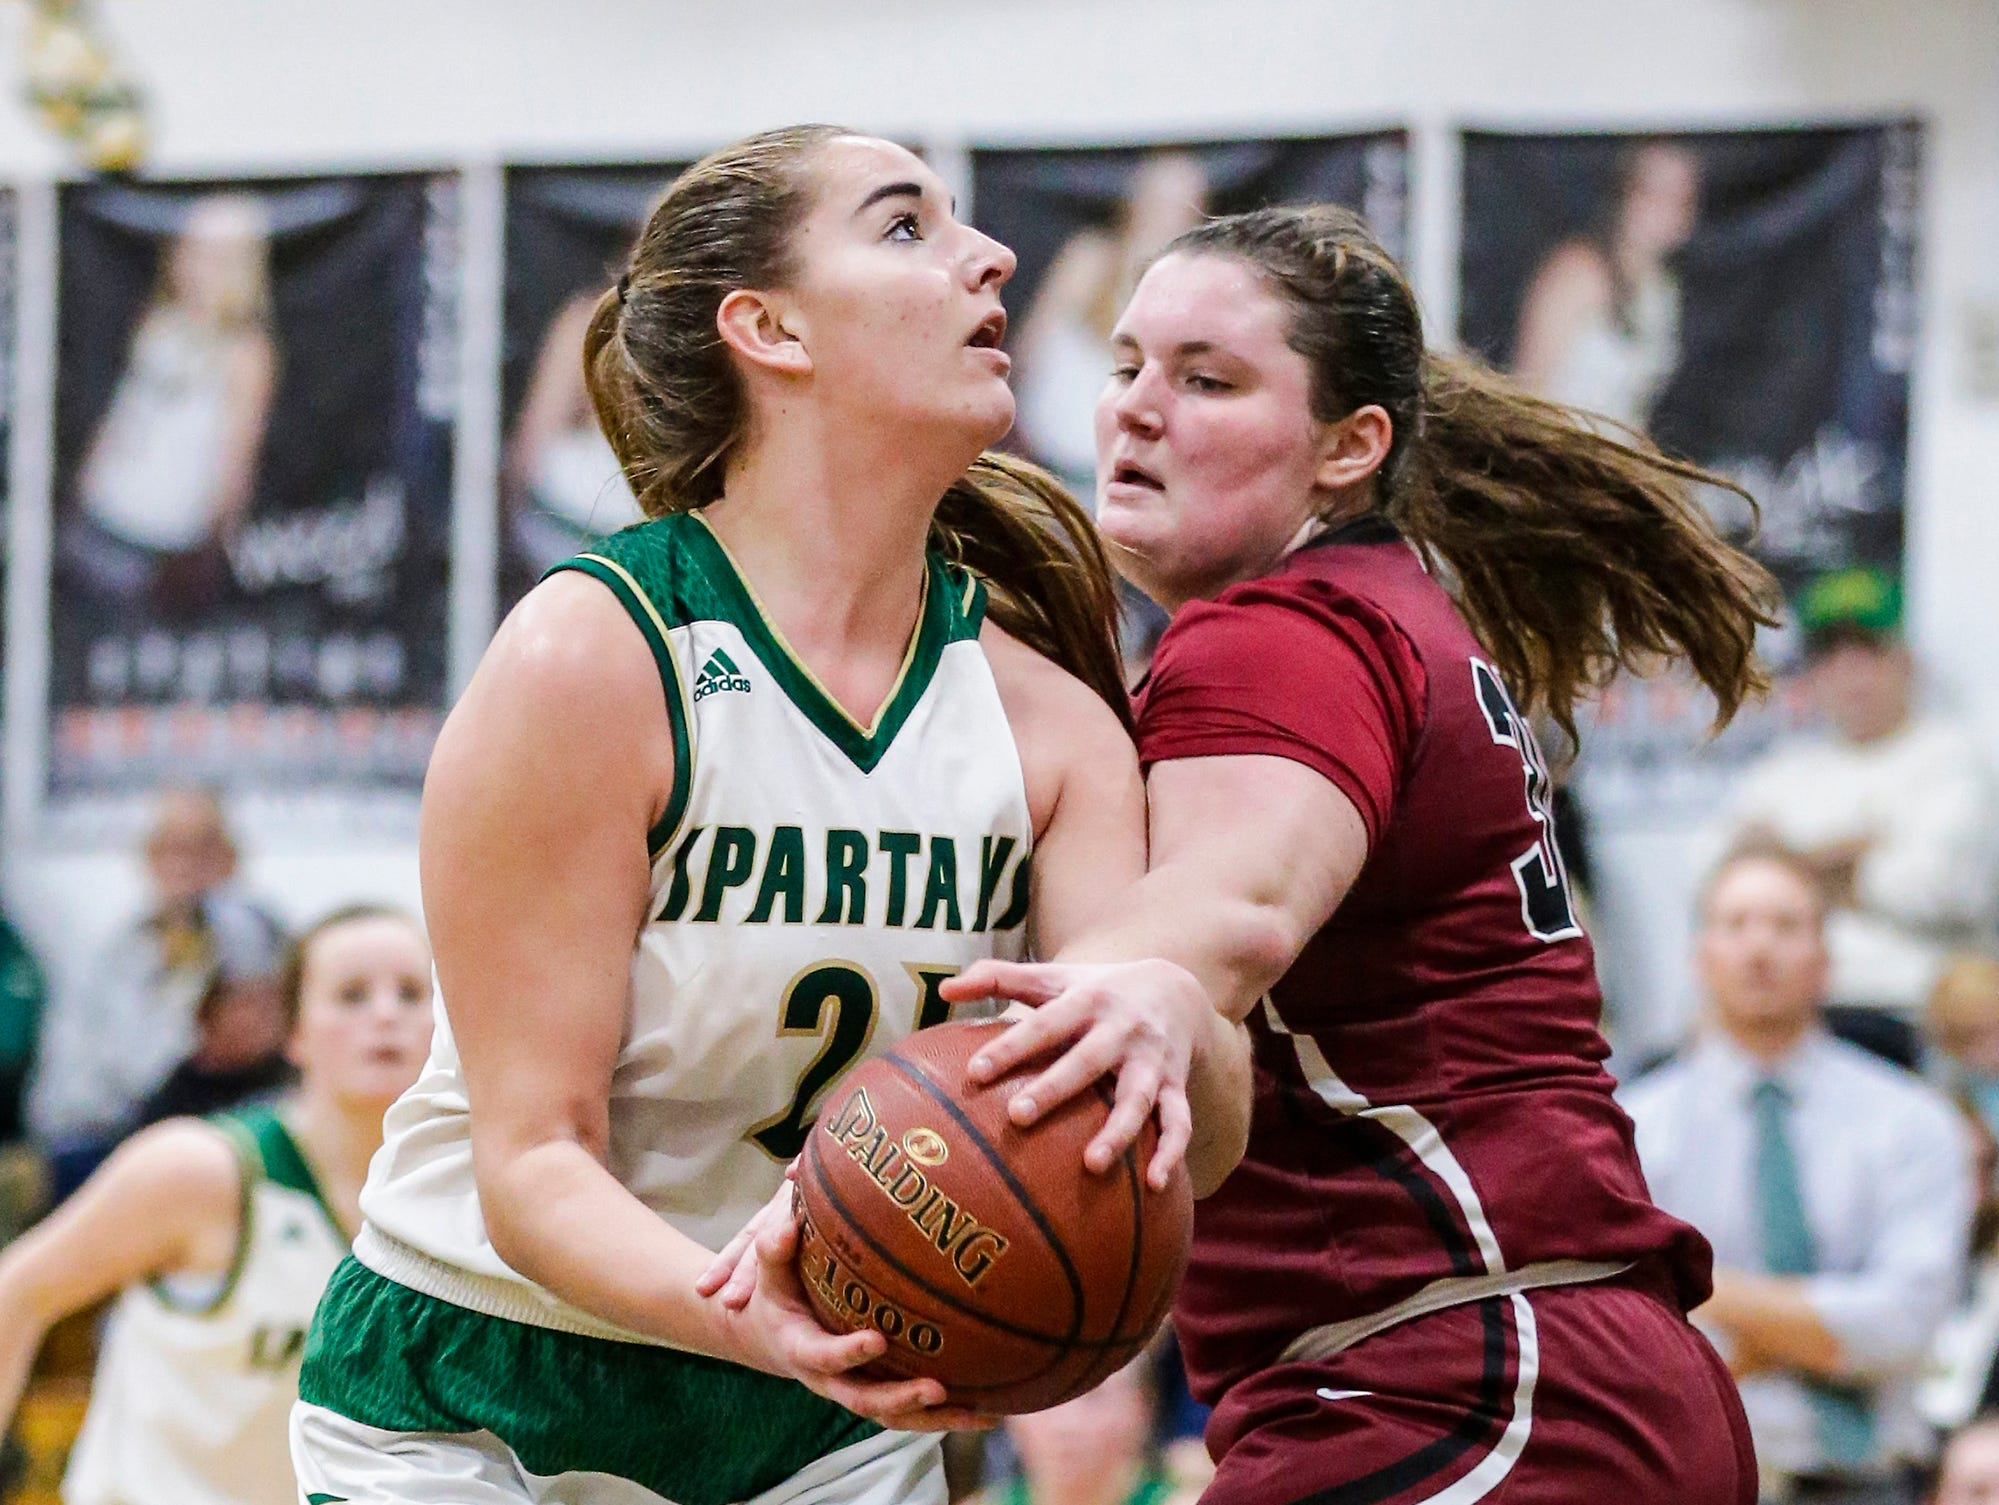 Laconia High School girls basketball's Alissa Dins gets fouled by Mayville High School's Sydney Schultz during their game Friday, November 30, 2018 in Rosendale. Doug Raflik/USA TODAY NETWORK-Wisconsin